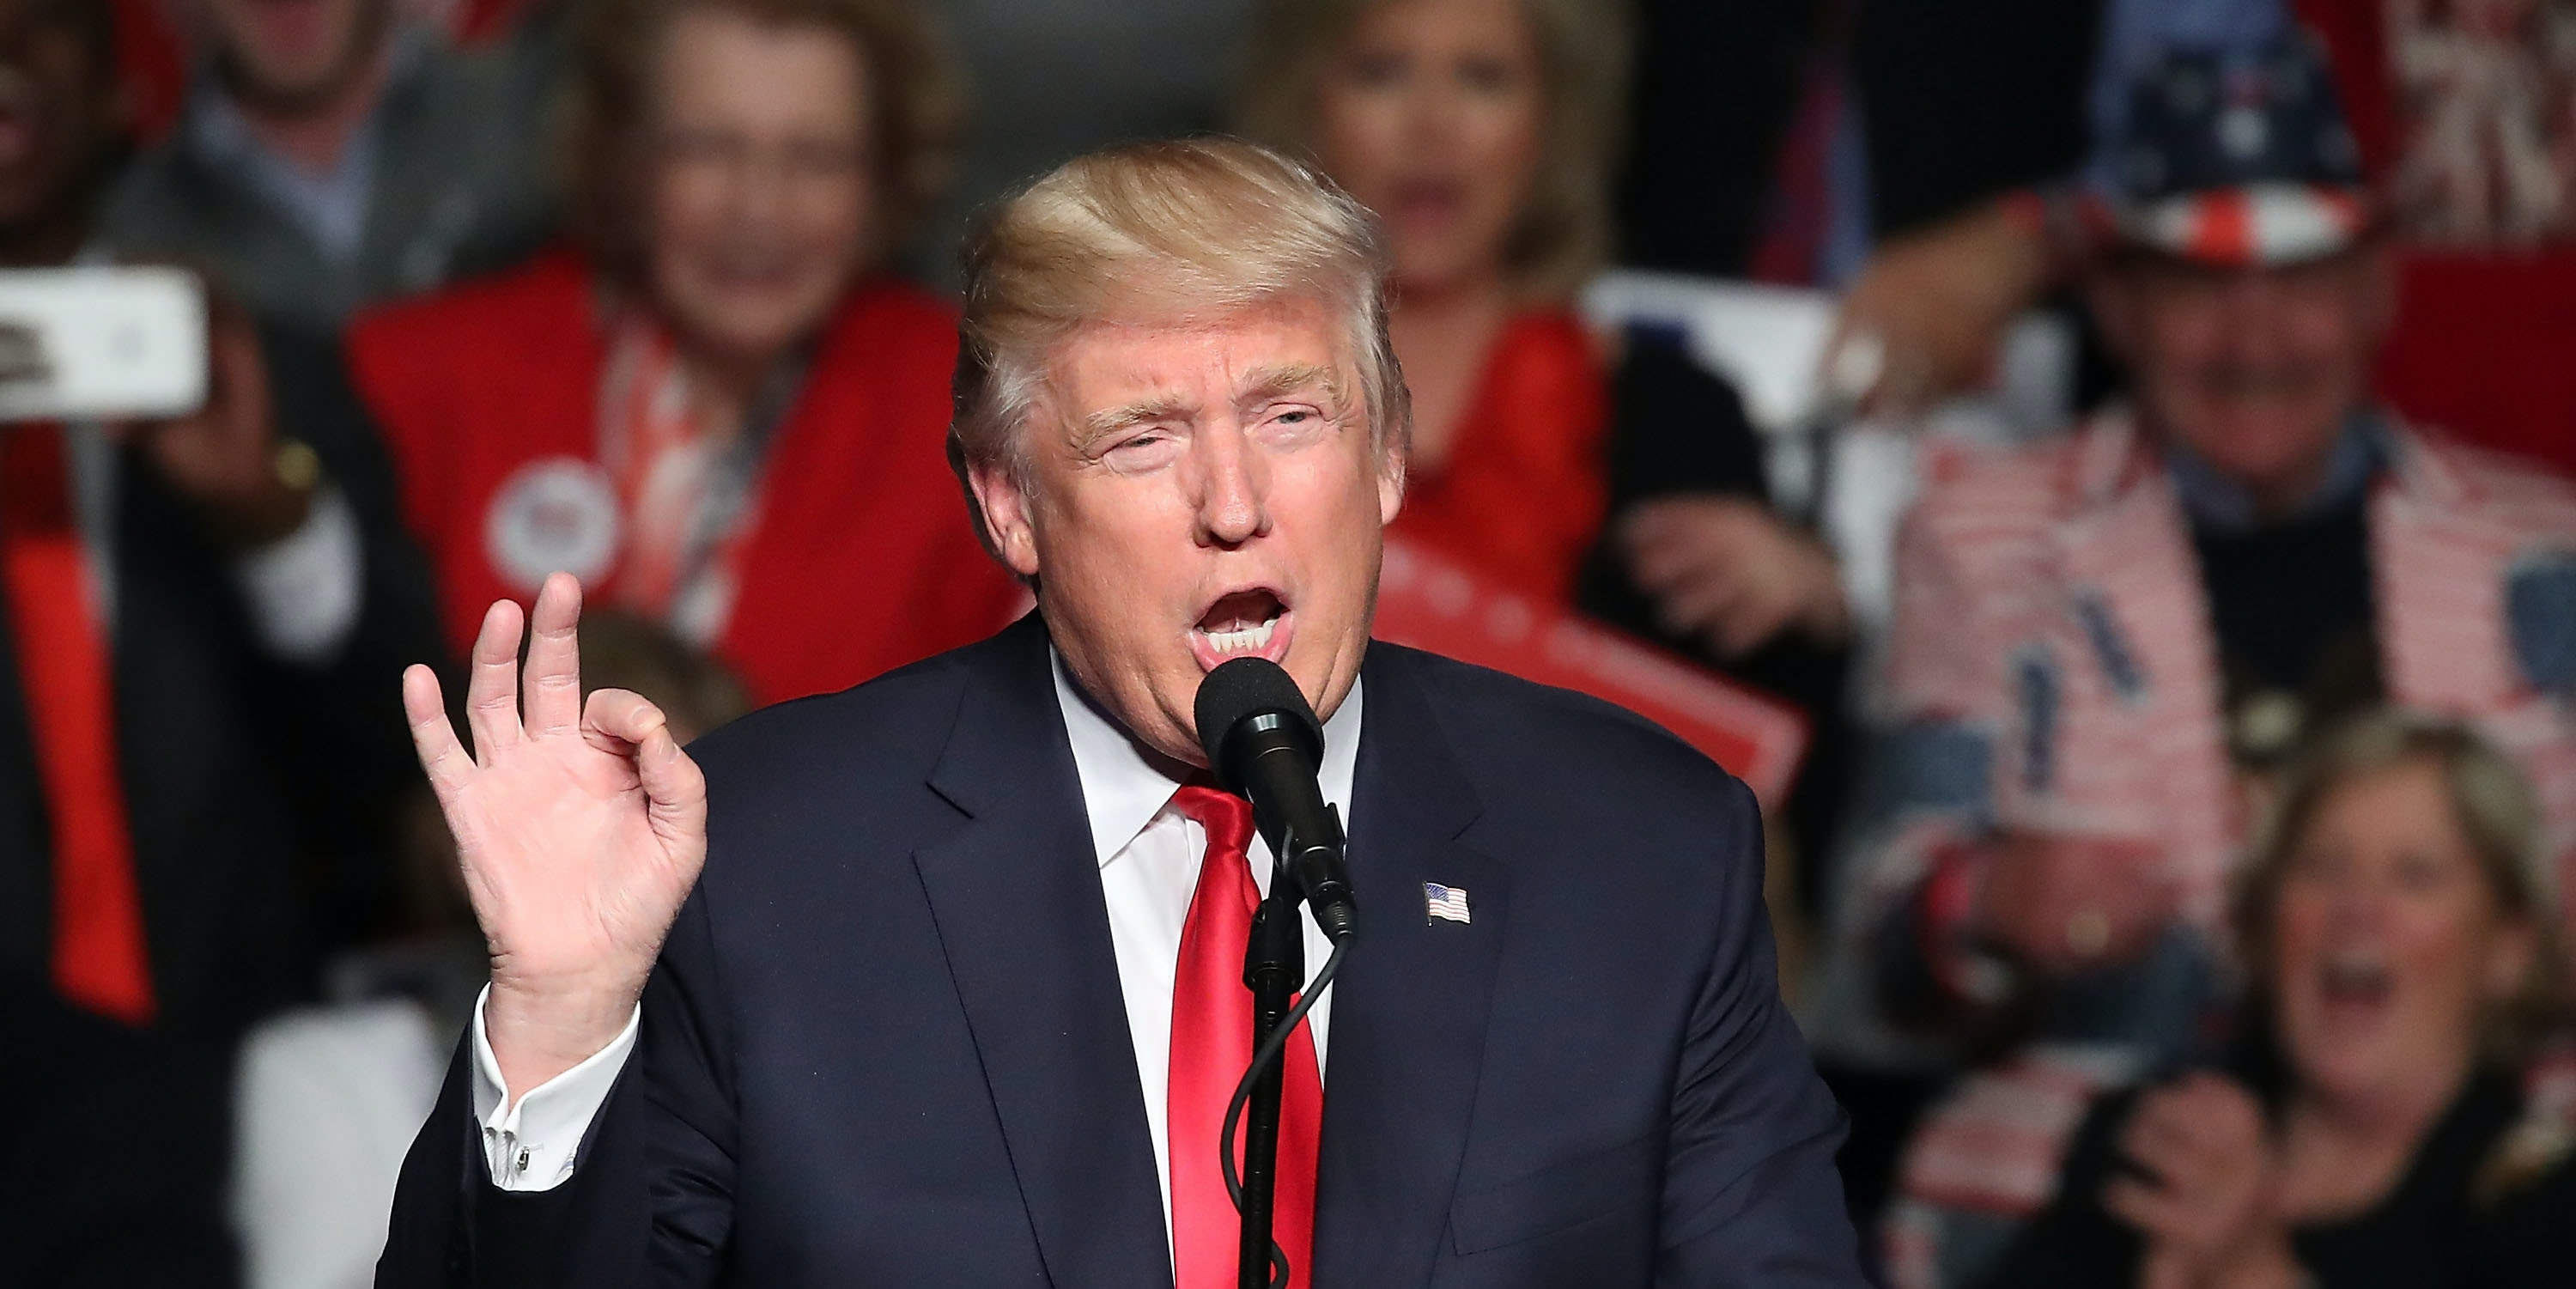 President-elect Donald Trump will meet with intelligence officials Friday to discuss Russian cyberattacks.